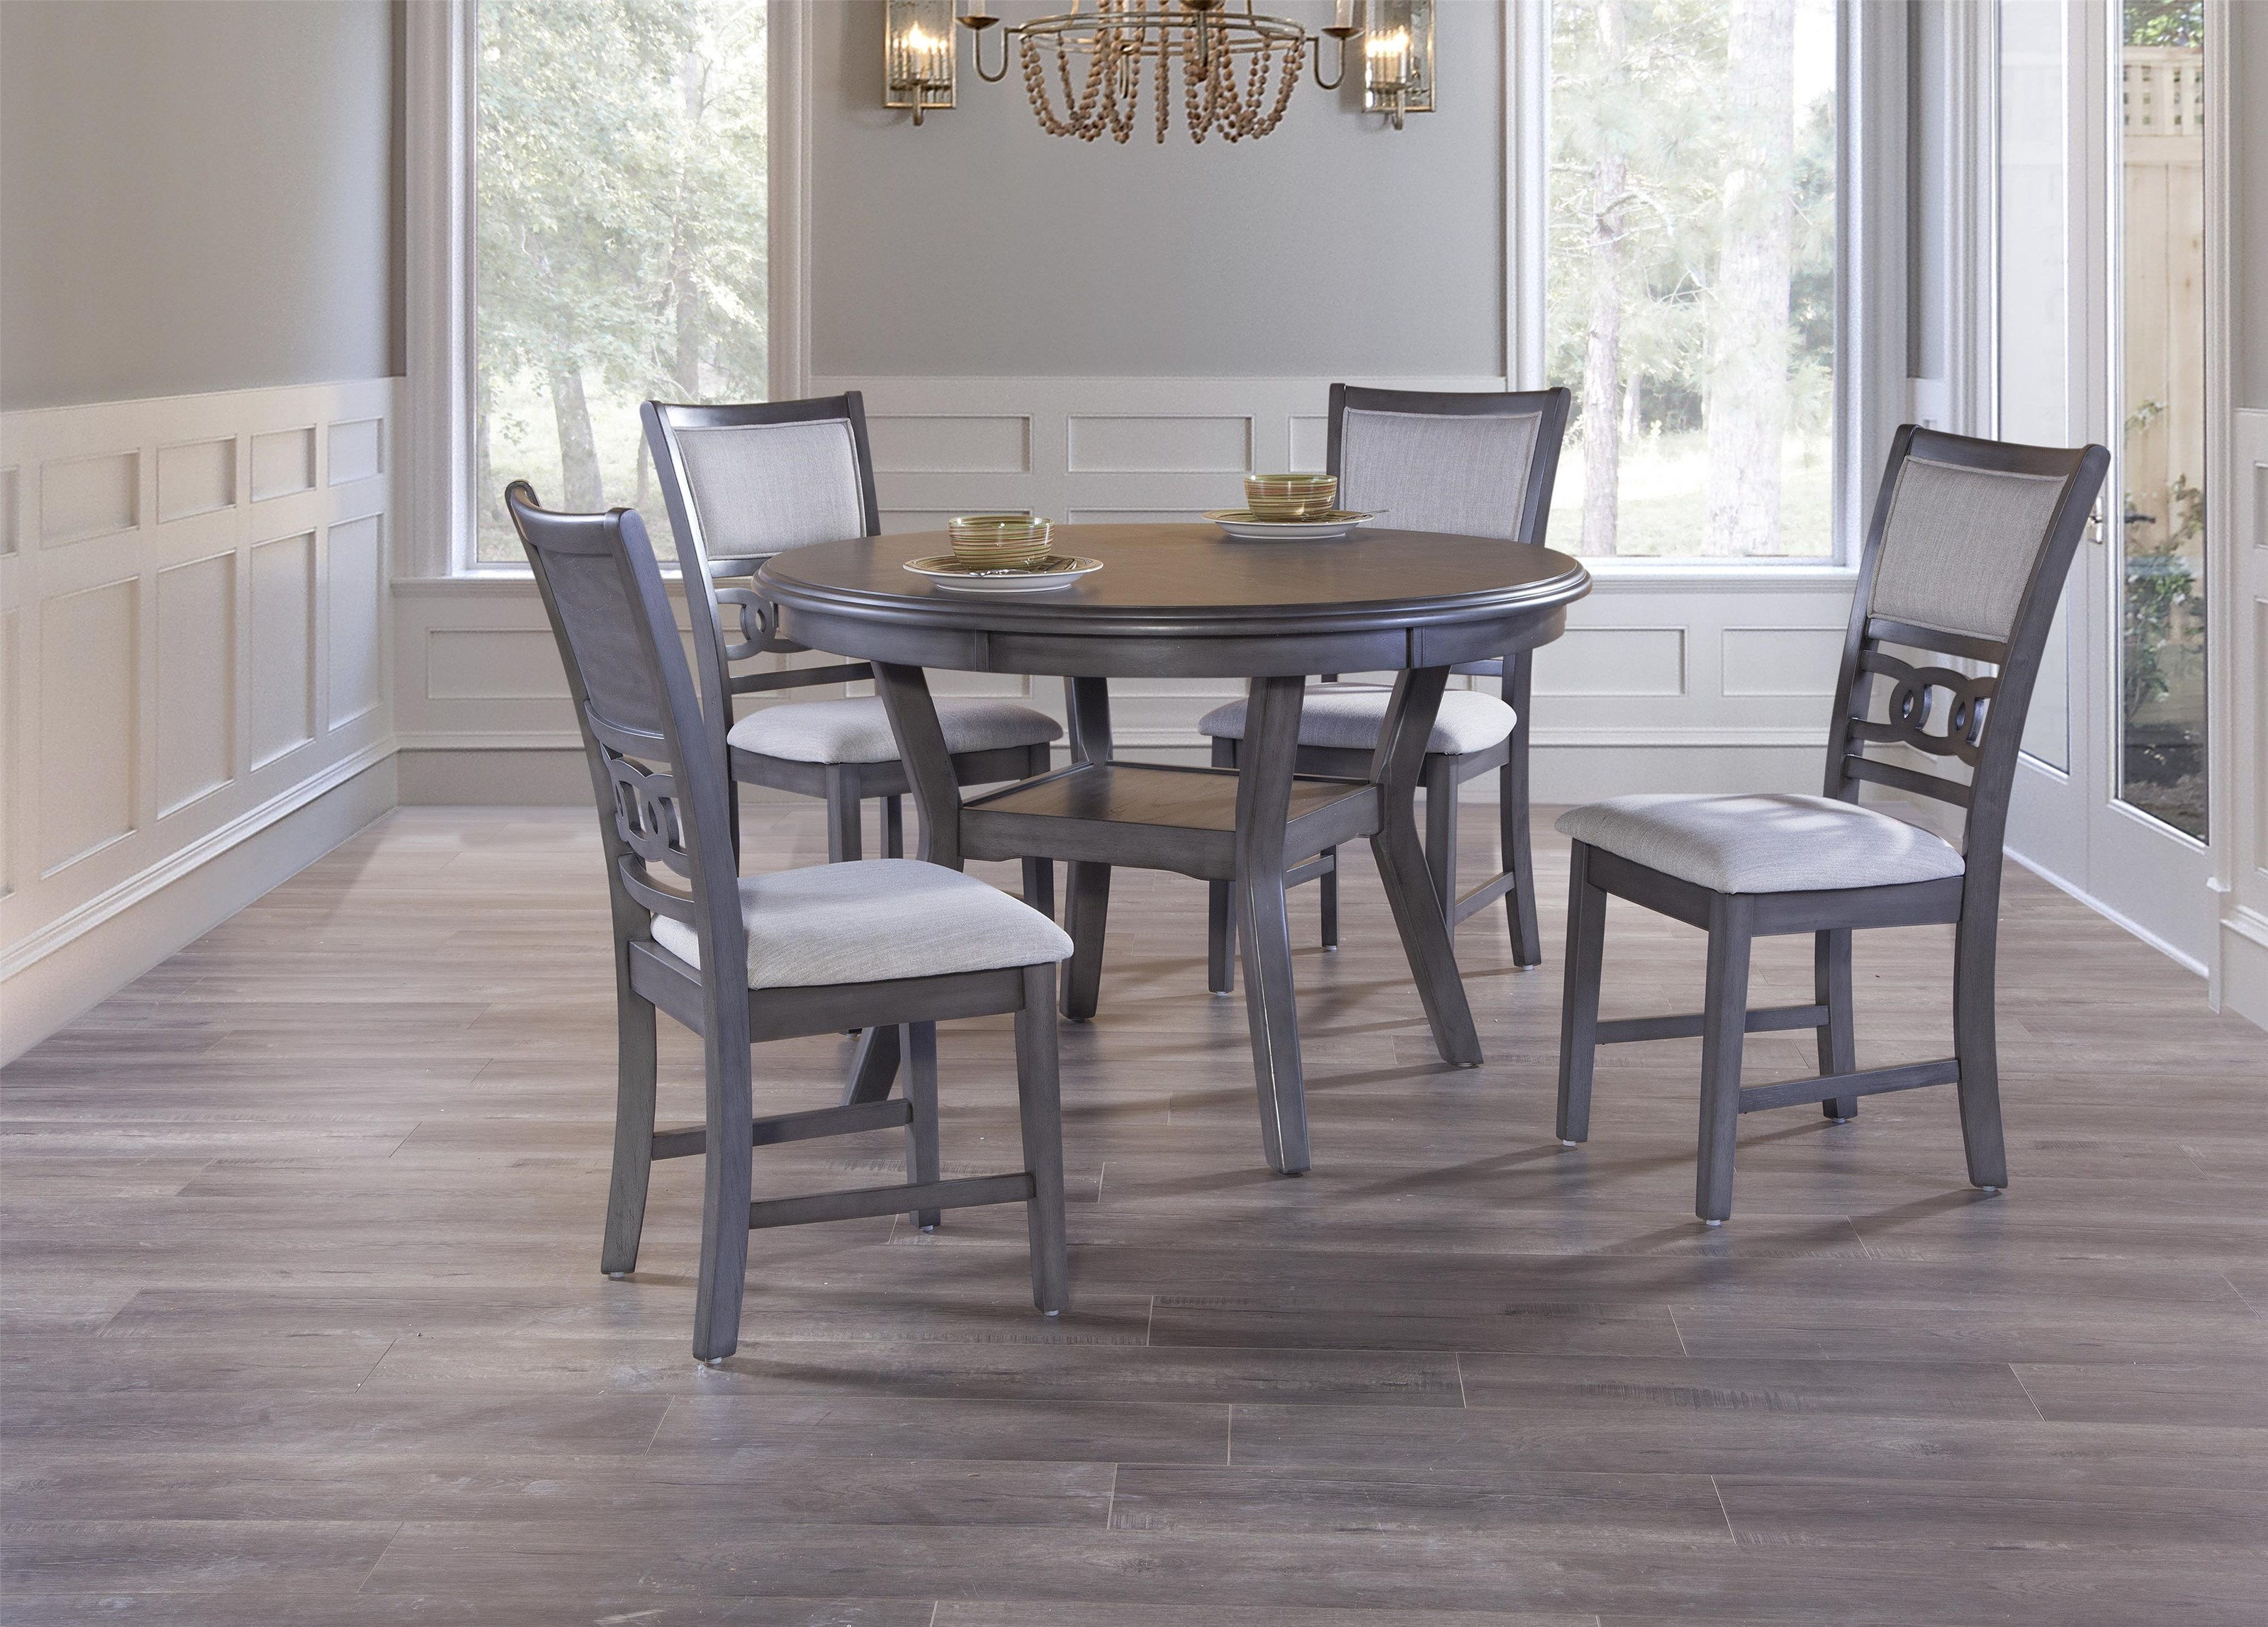 Dining Table and Chair Set with 4 Chairs